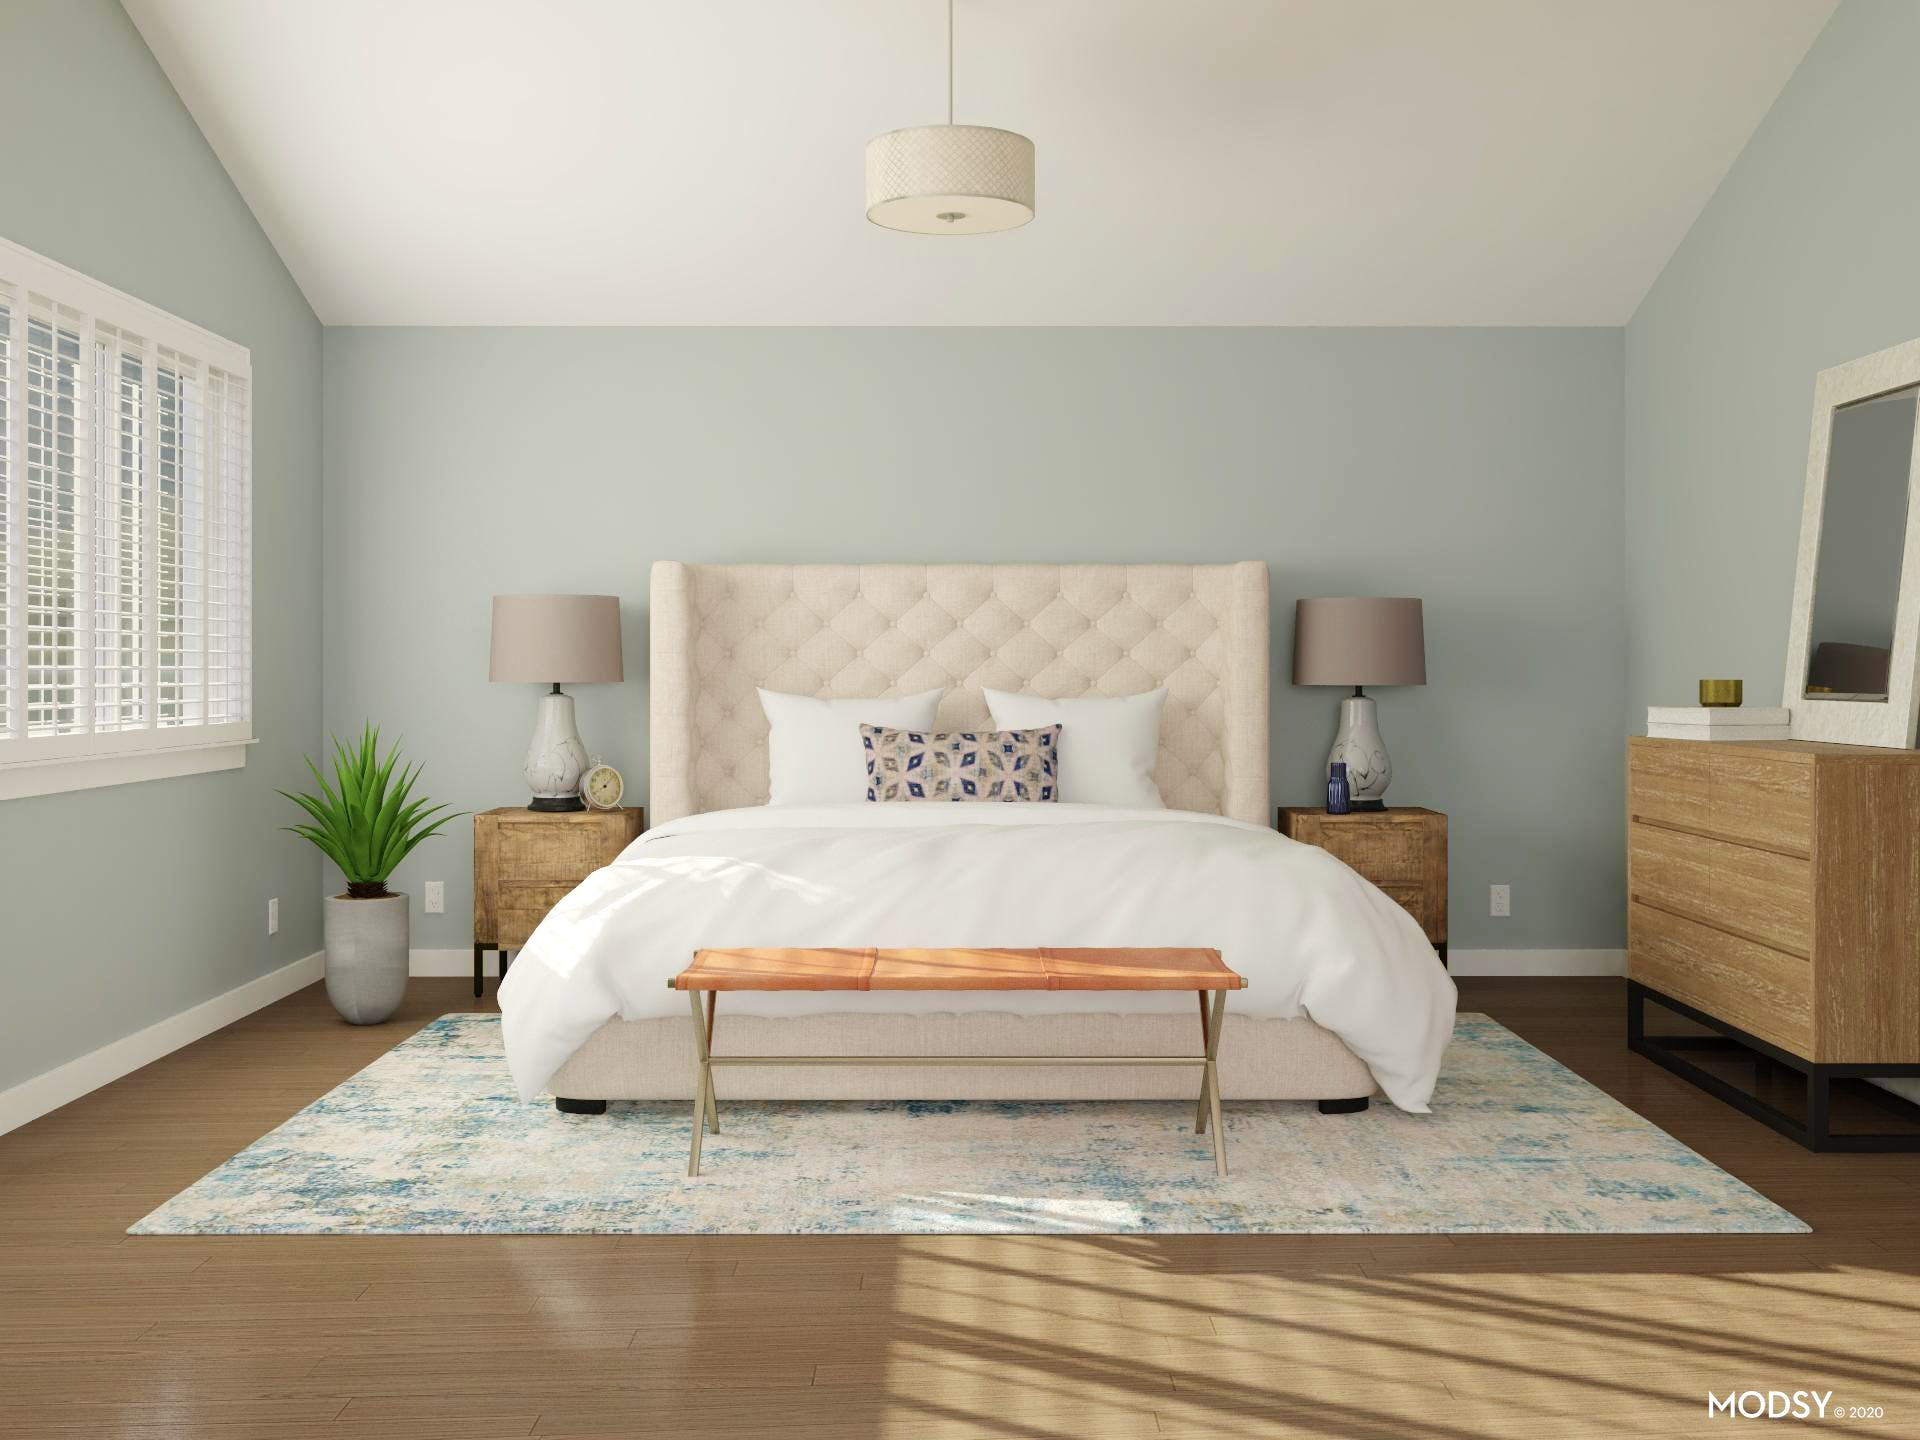 Minimal and Contemporary Bedroom in Breezy Blue with Mid-Size Rug